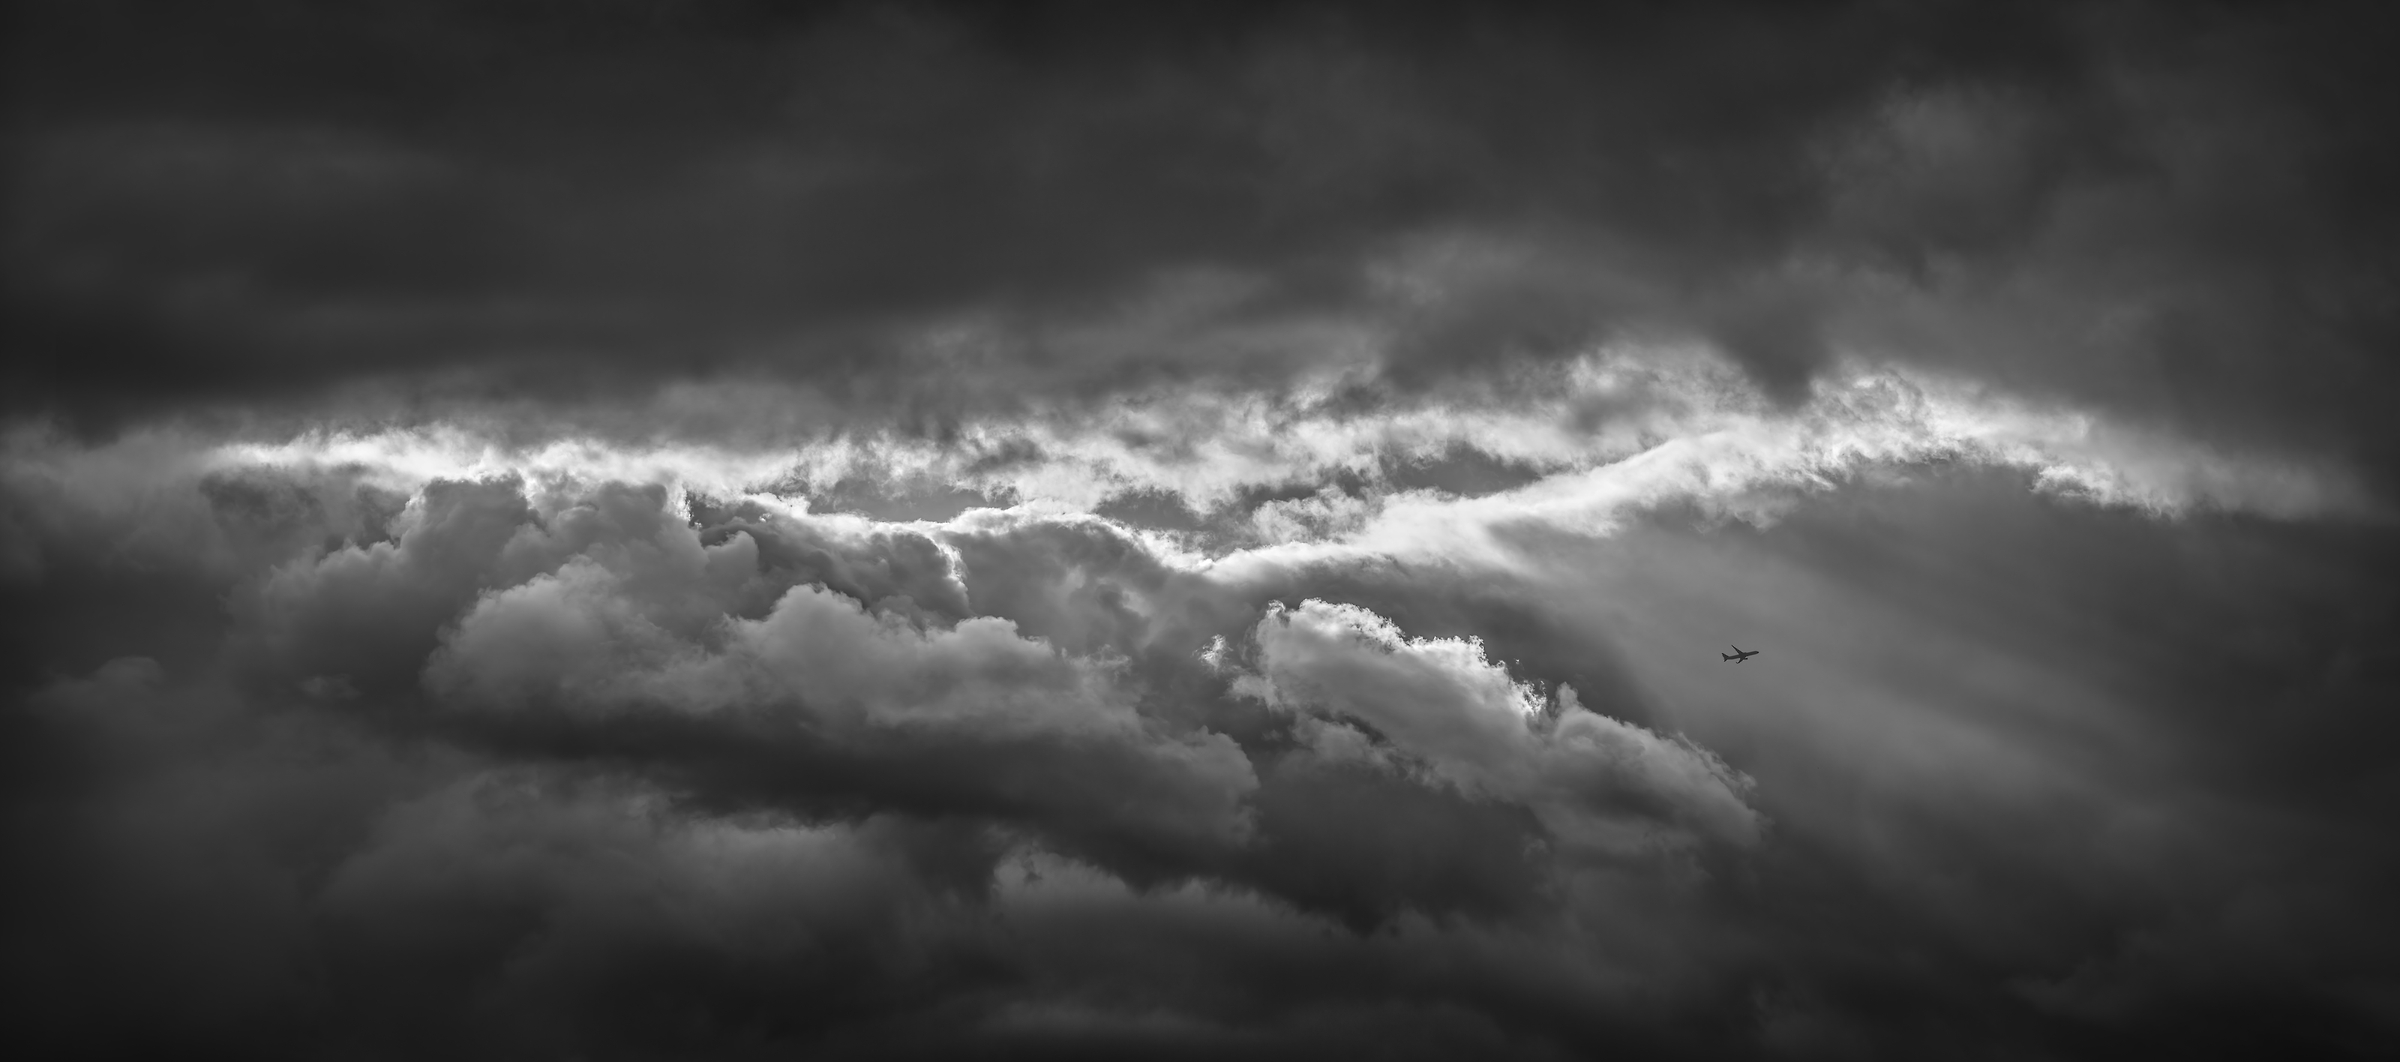 532 megapixels! A very high resolution, black & white VAST photo print of an epic cloud formation; fine art photograph created by Dan Piech in New York City